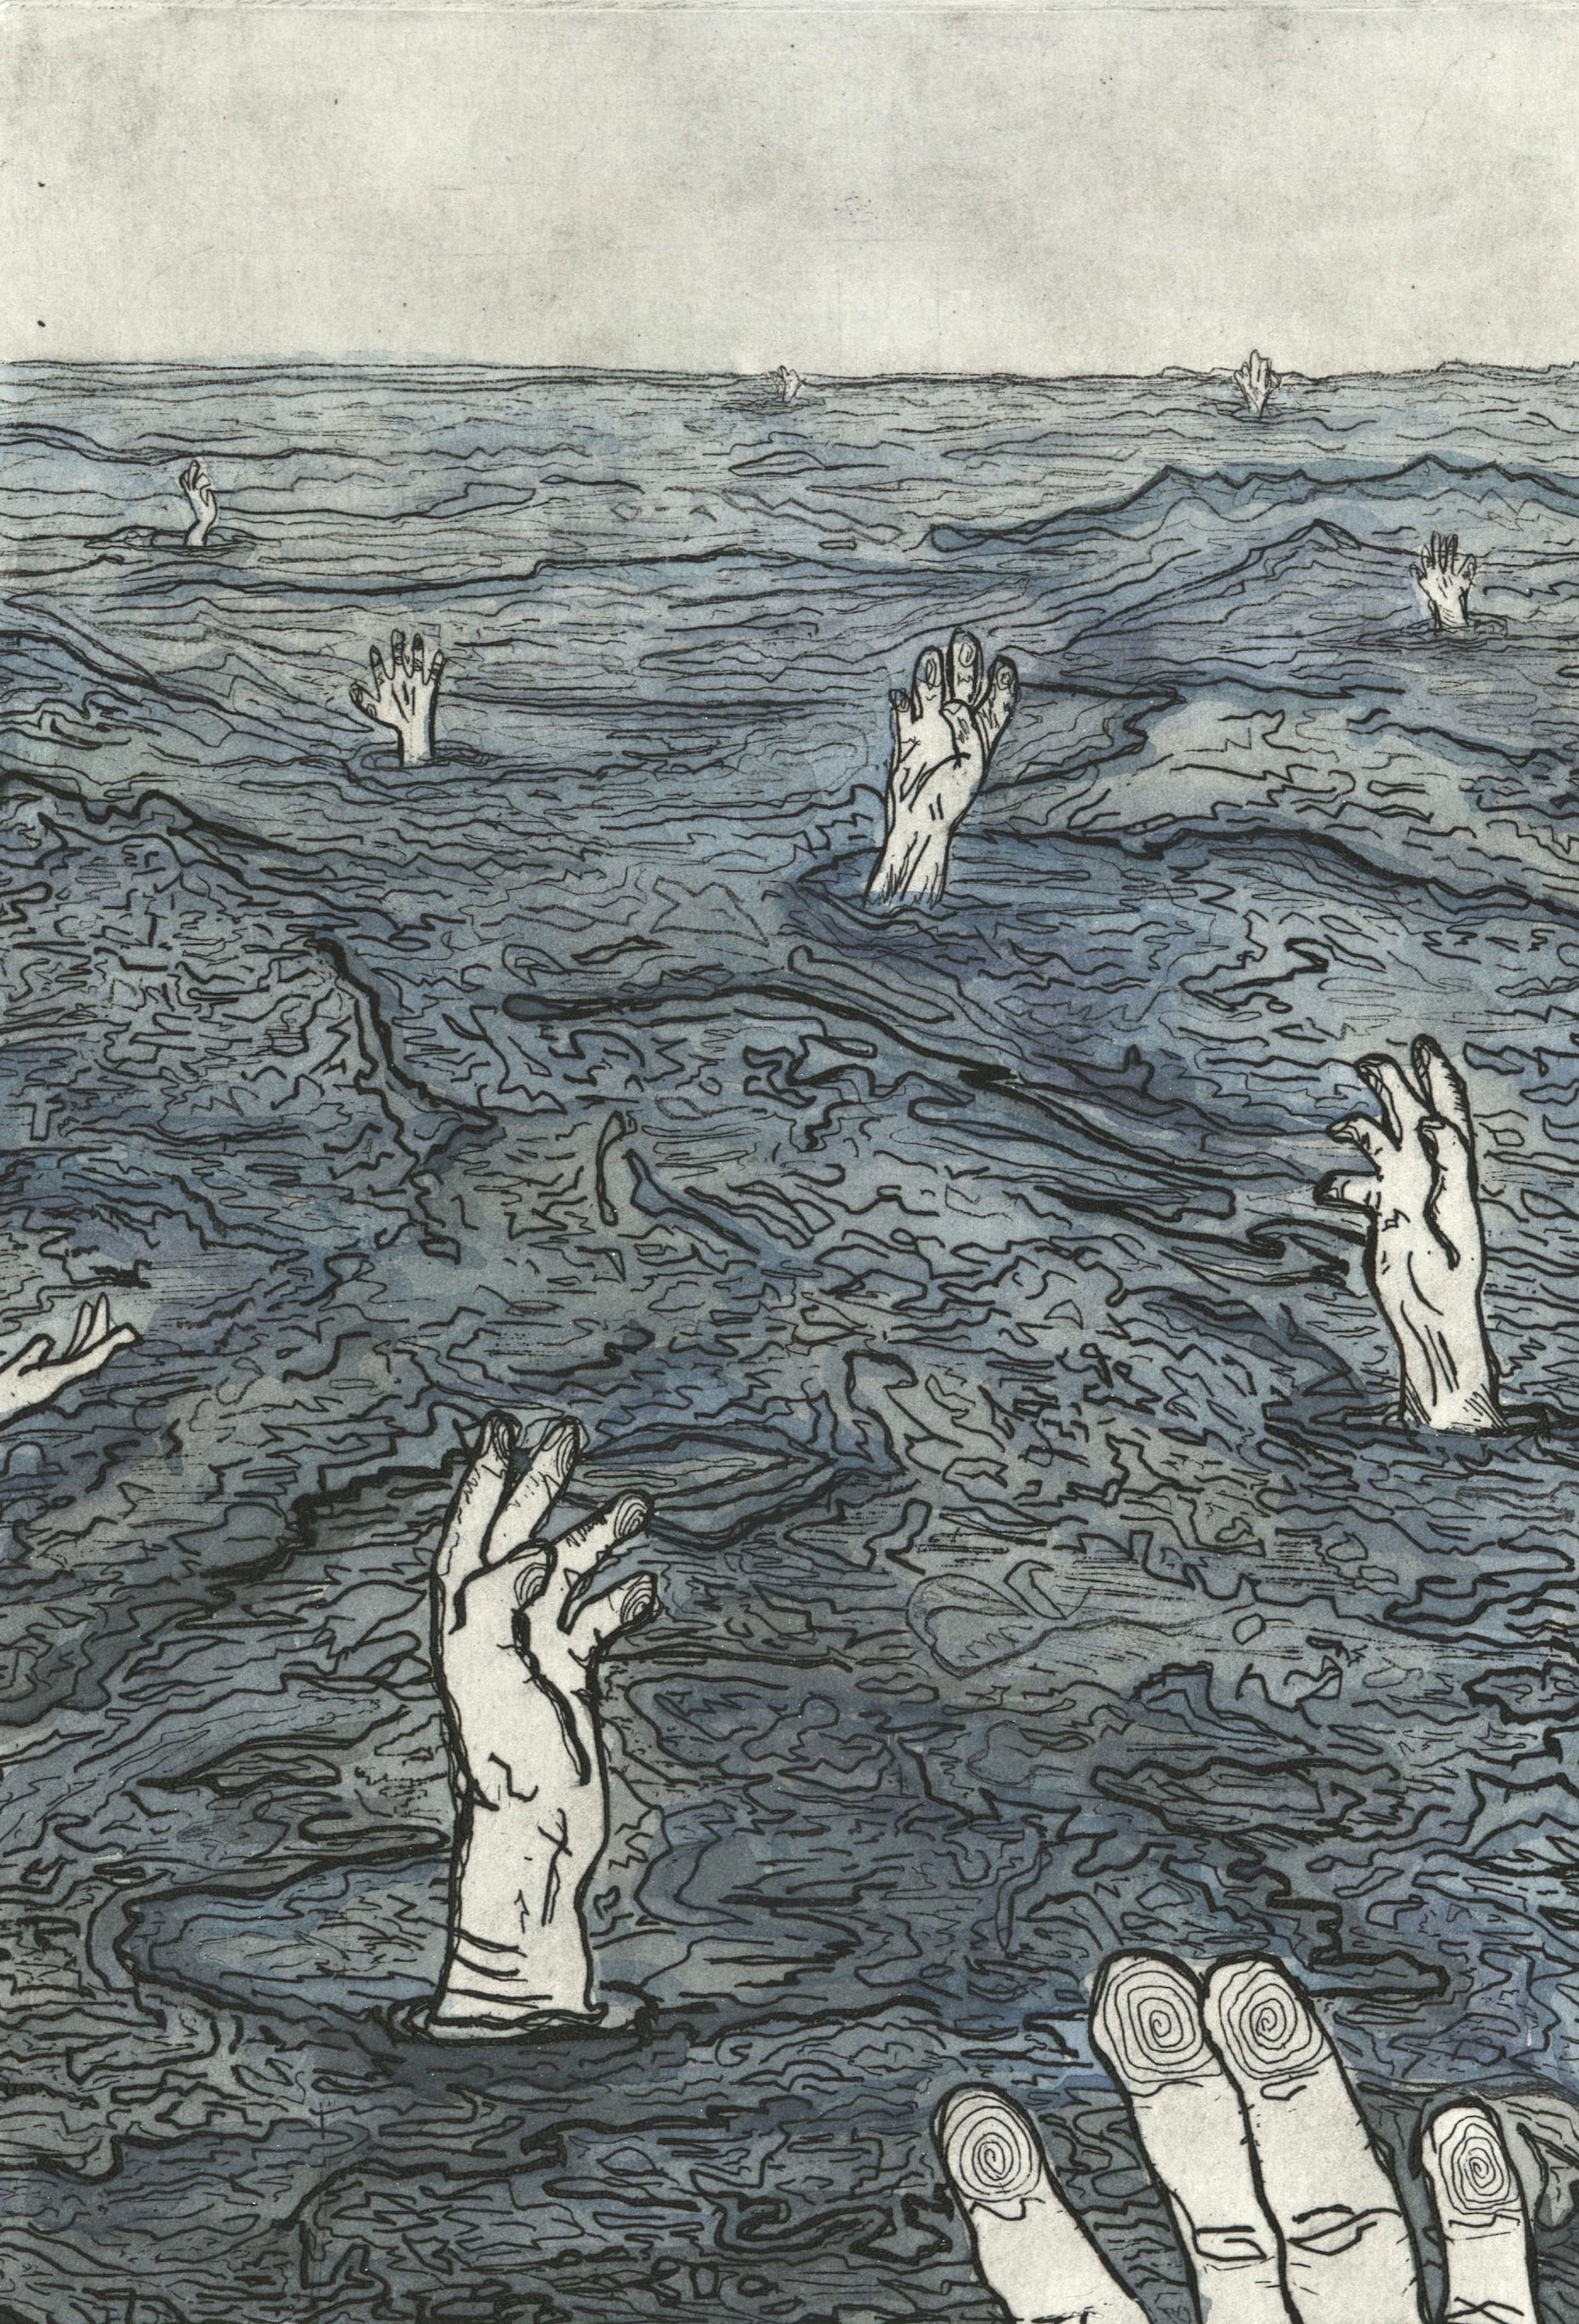 """Cold Water Swimming Helps Depression,  2017. 7 x 5 in. Etched zinc plate prints, using five different inking methods.  As my first prints ever, I was moved to create this series after seeing a click-bait article titled """"10 Ways to Help Cope with Depression,"""" where one of the coping mechanisms reduced to a superficial bullet point was cold water swimming."""